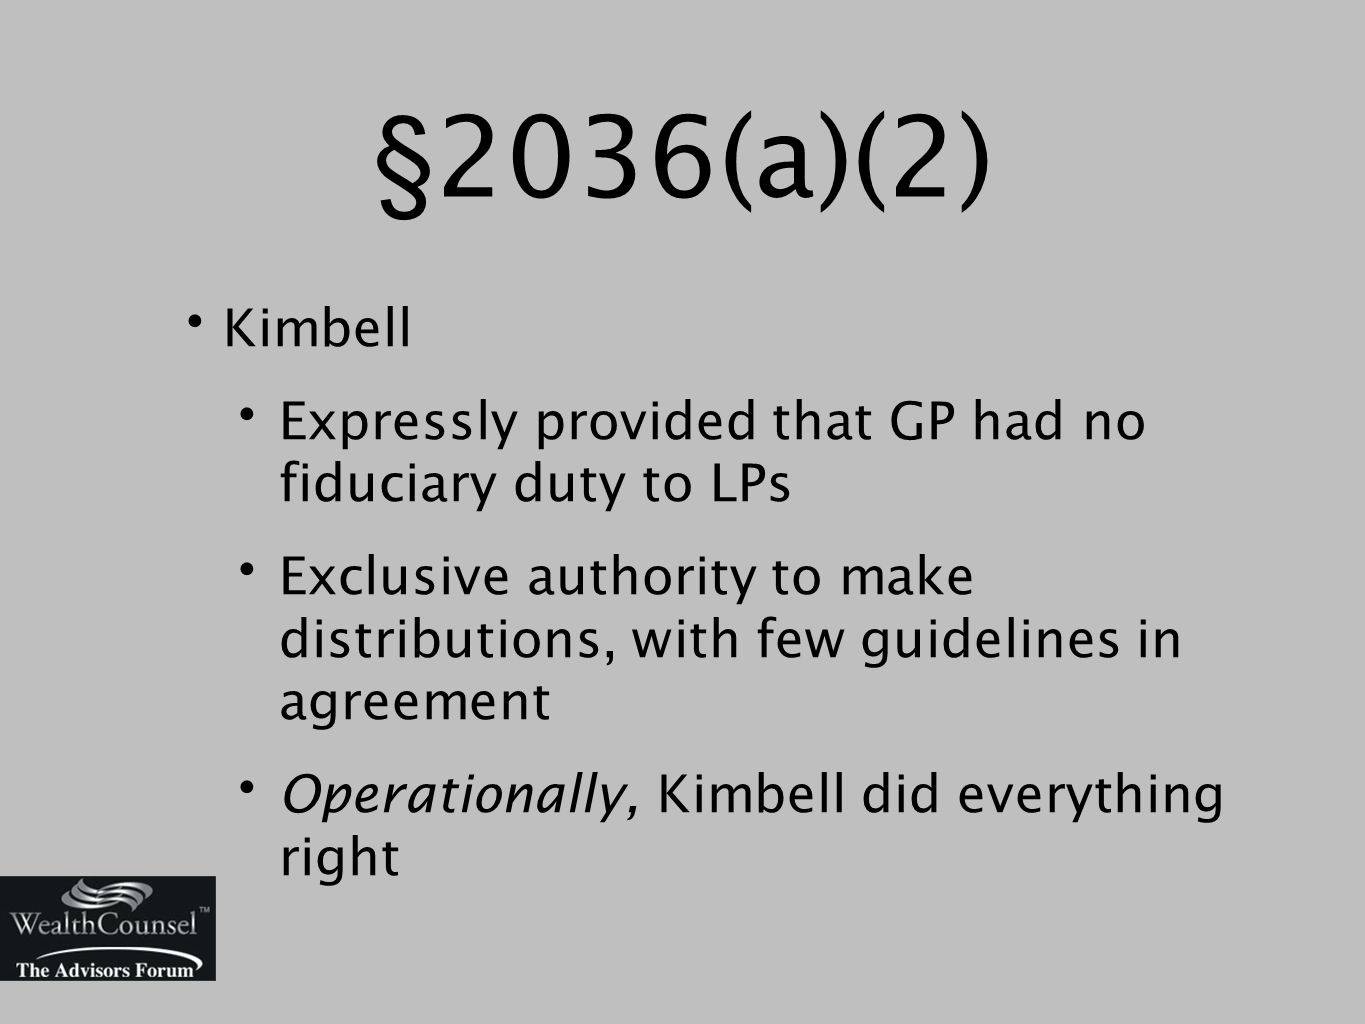 §2036(a)(2) Kimbell Expressly provided that GP had no fiduciary duty to LPs Exclusive authority to make distributions, with few guidelines in agreement Operationally, Kimbell did everything right